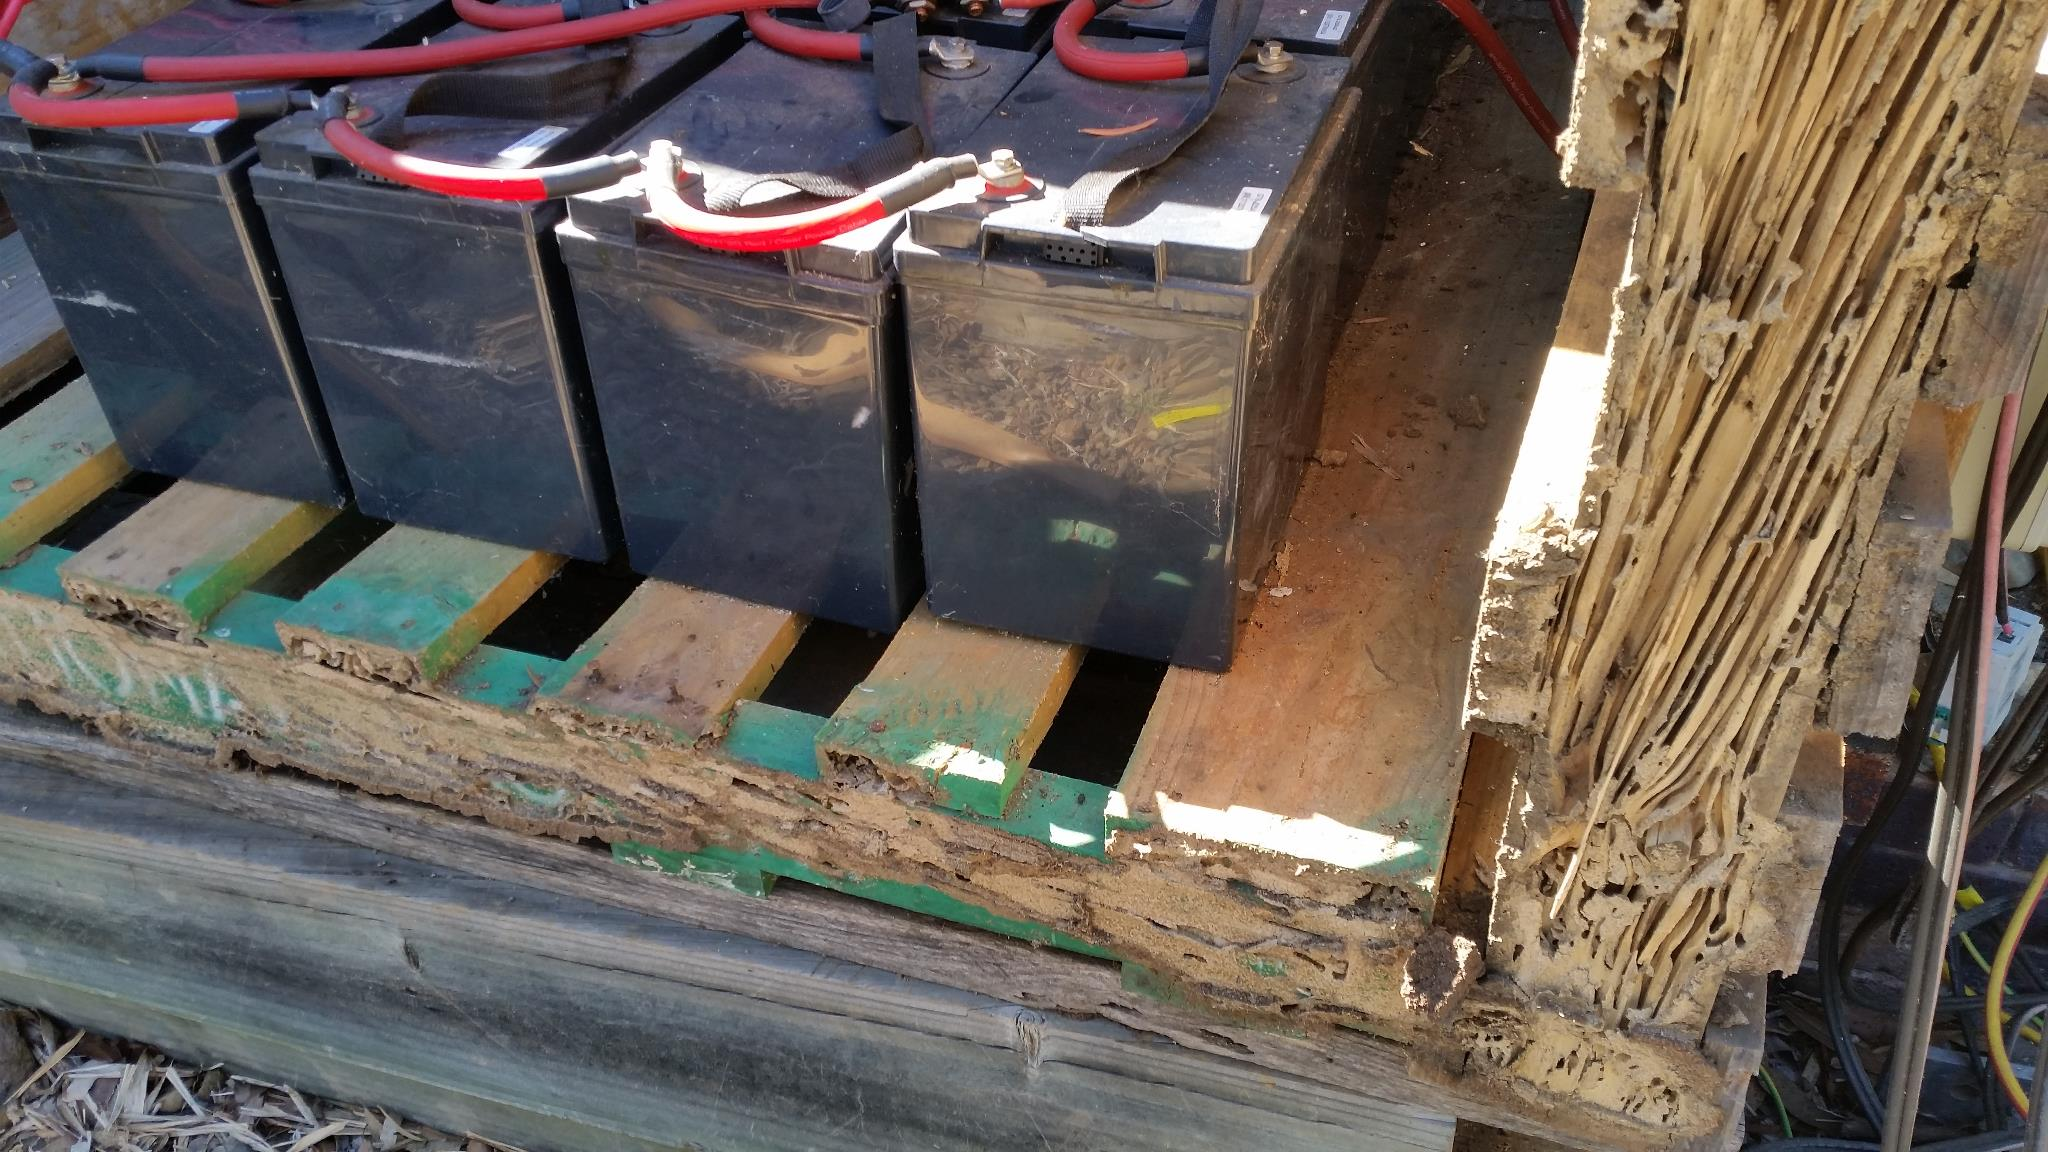 Termites in the Solar Box